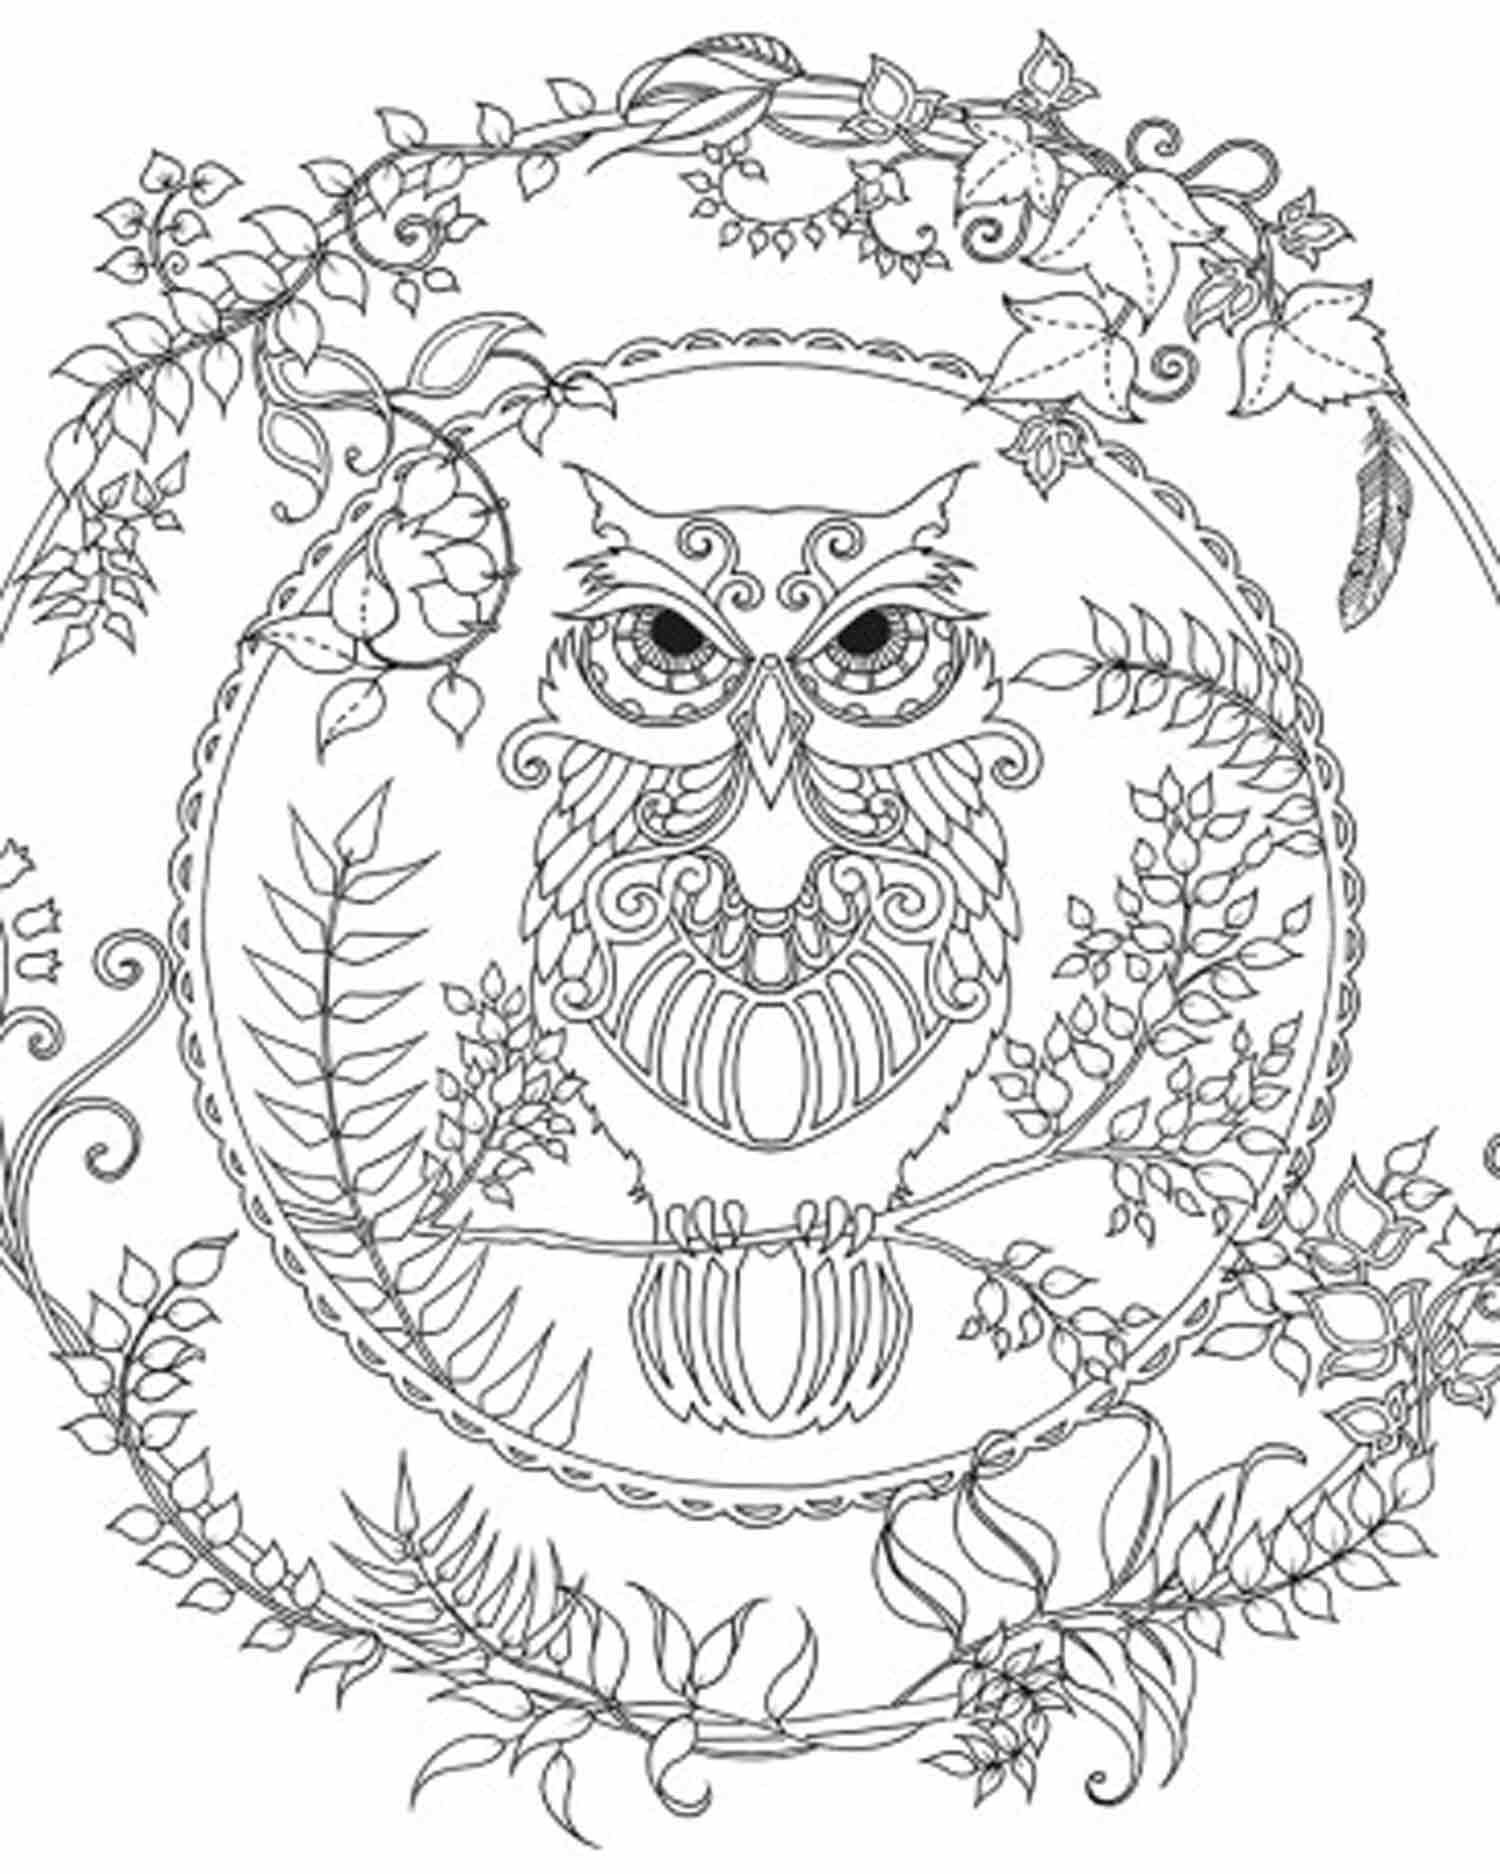 Forest Coloring Pages - Best Coloring Pages For Kids | 1874x1500